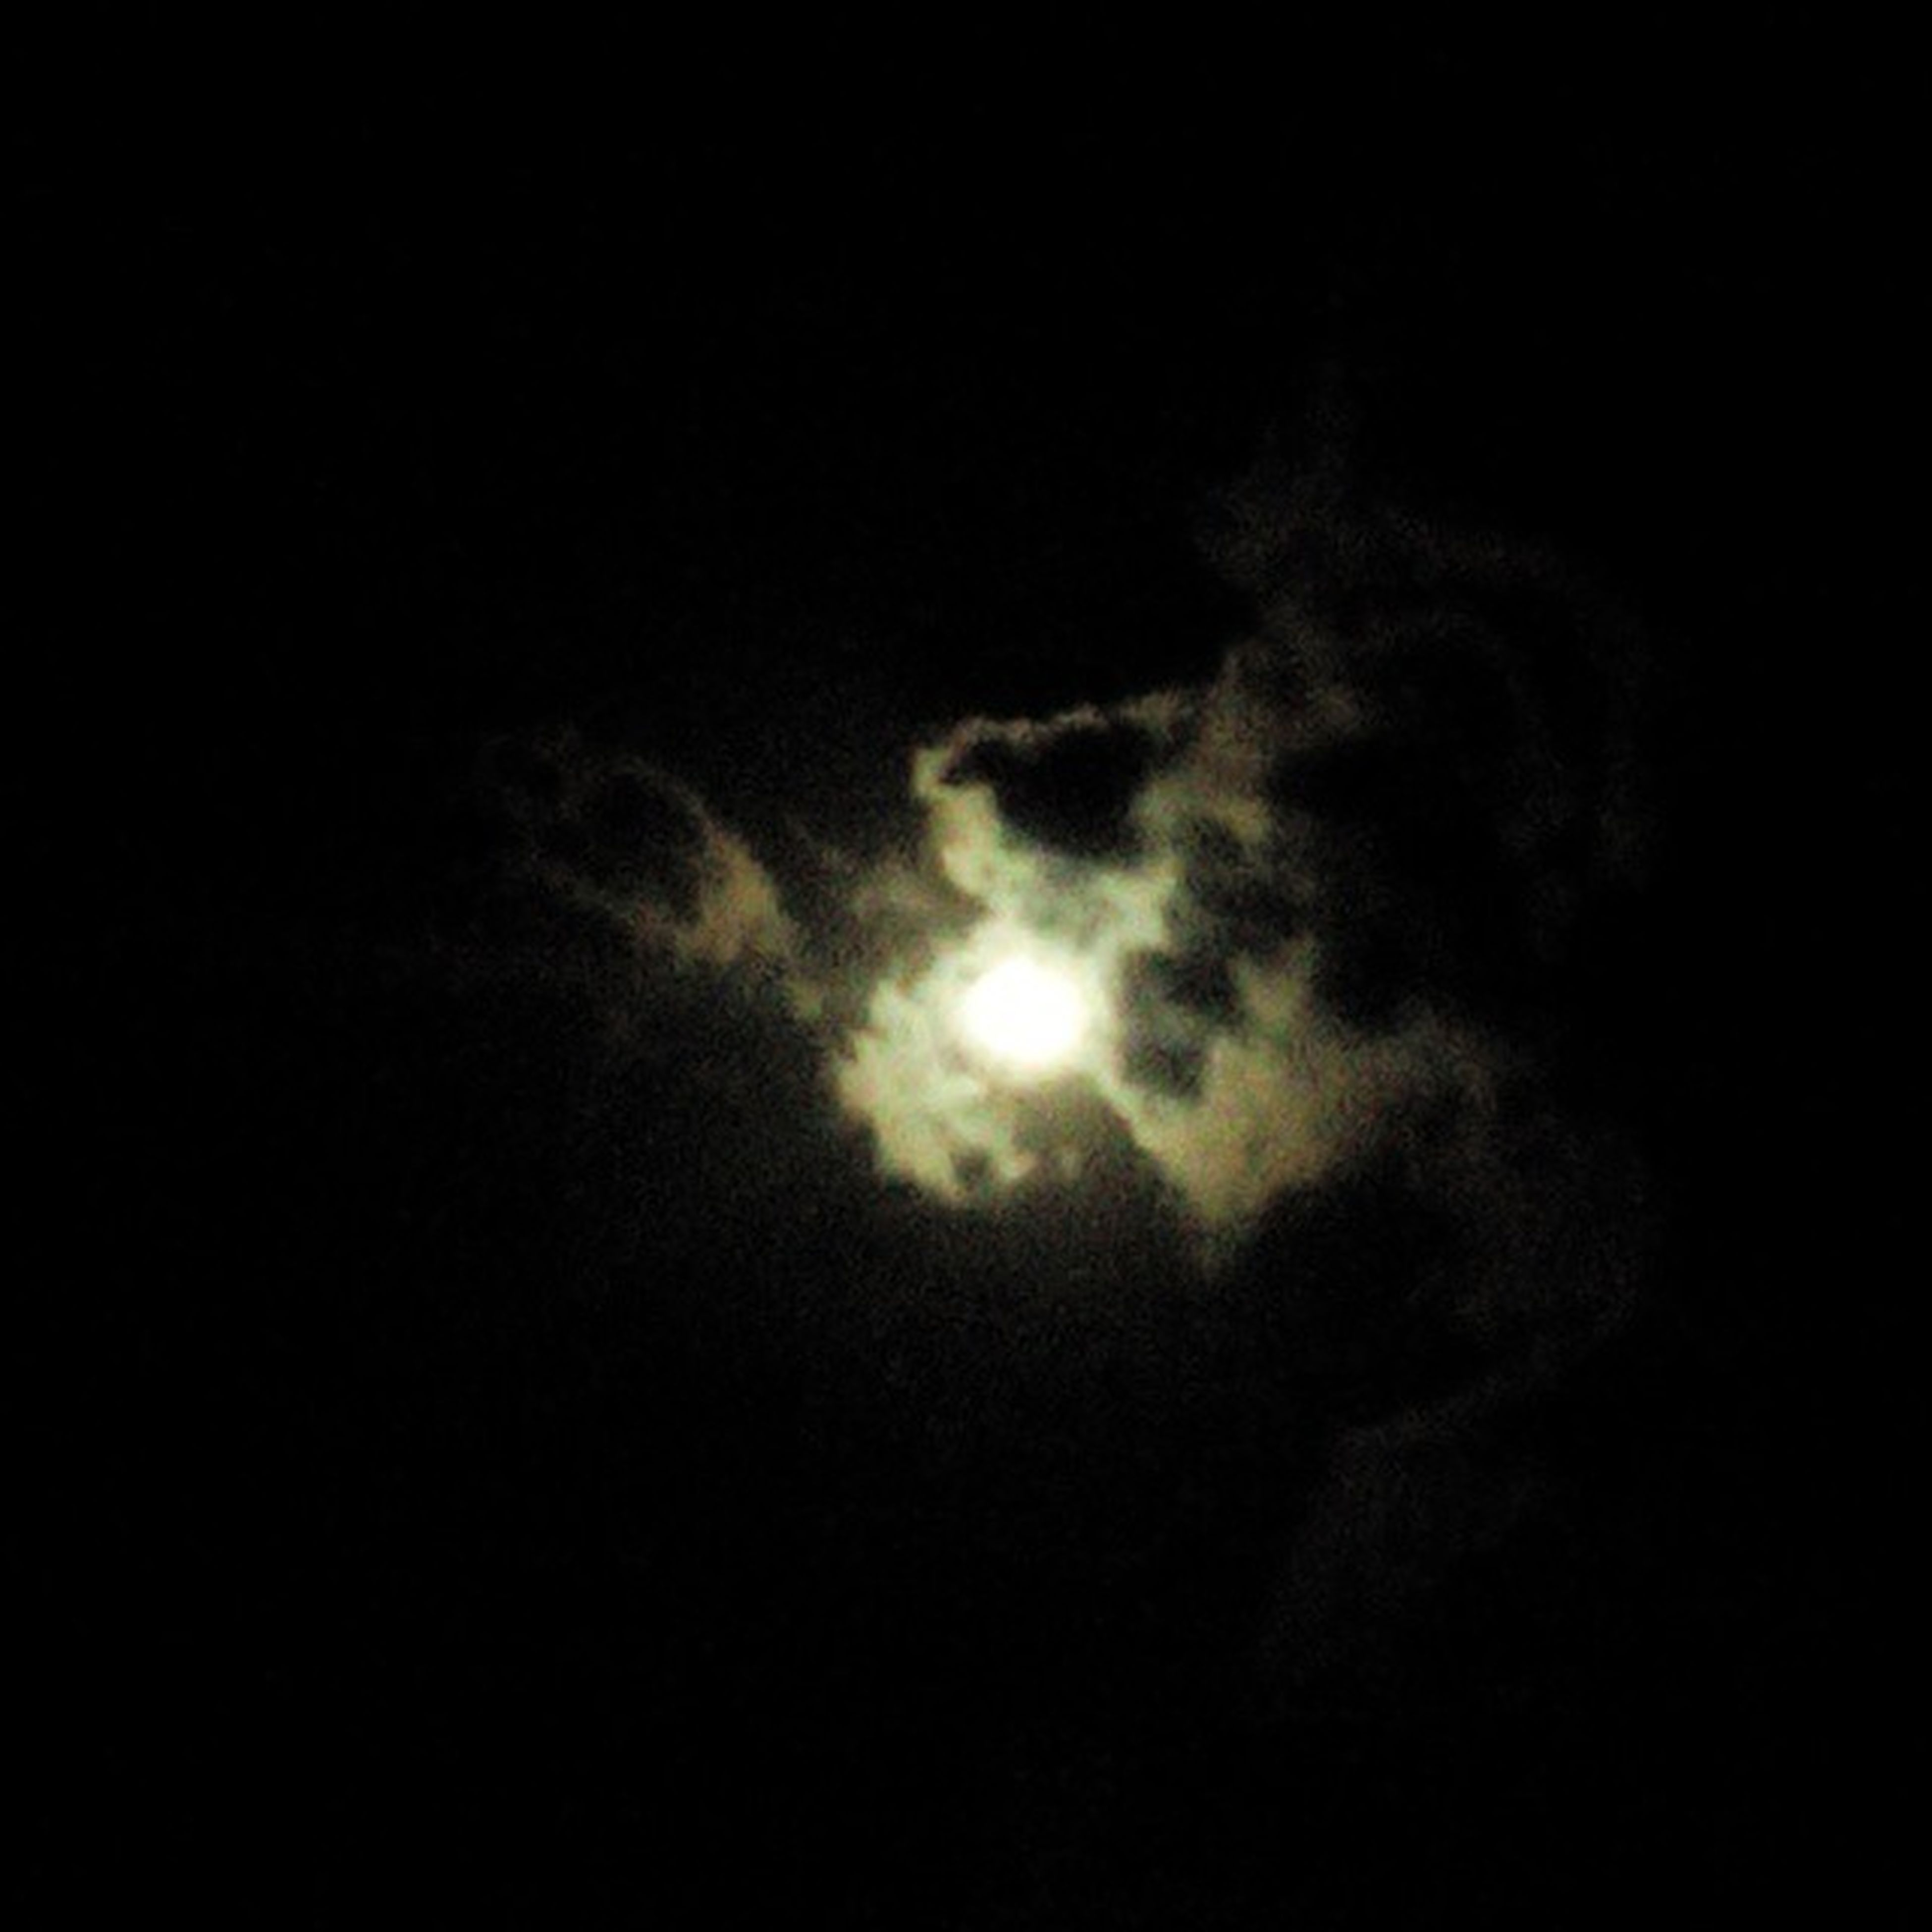 sky, low angle view, beauty in nature, scenics, tranquility, tranquil scene, cloud - sky, nature, silhouette, dark, night, sky only, idyllic, cloudy, copy space, majestic, weather, moon, outdoors, cloudscape